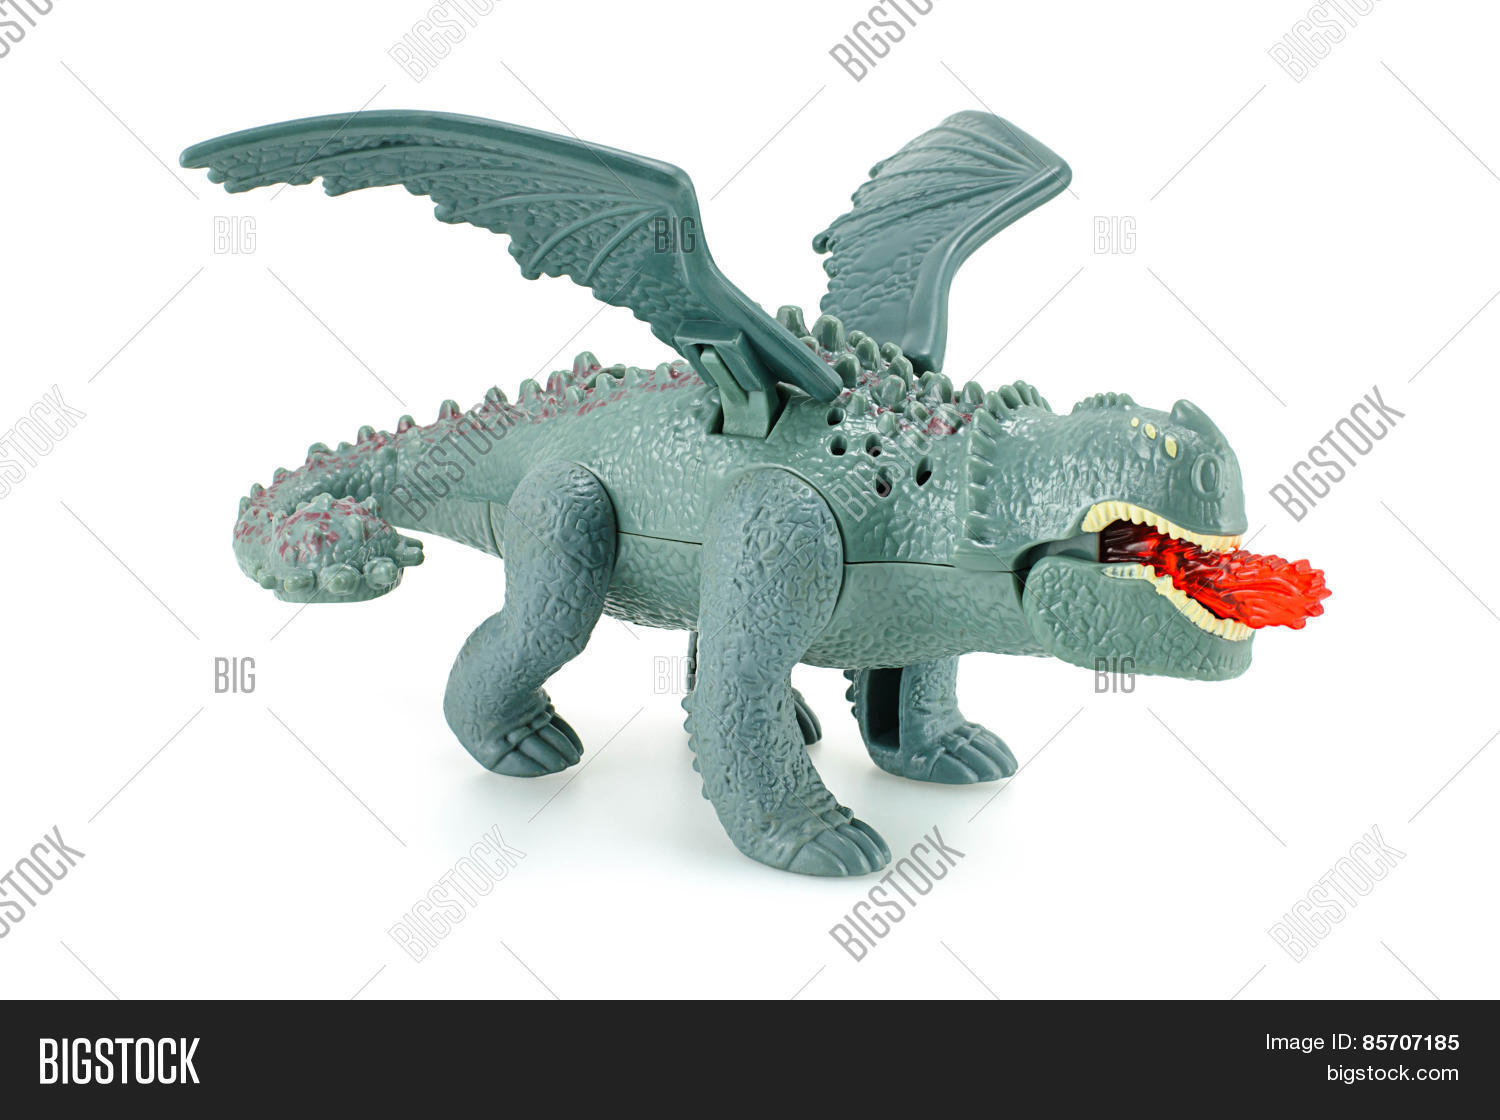 Red death dragon toy character how image photo bigstock red death dragon toy character from how to train your dragon animation film ccuart Gallery